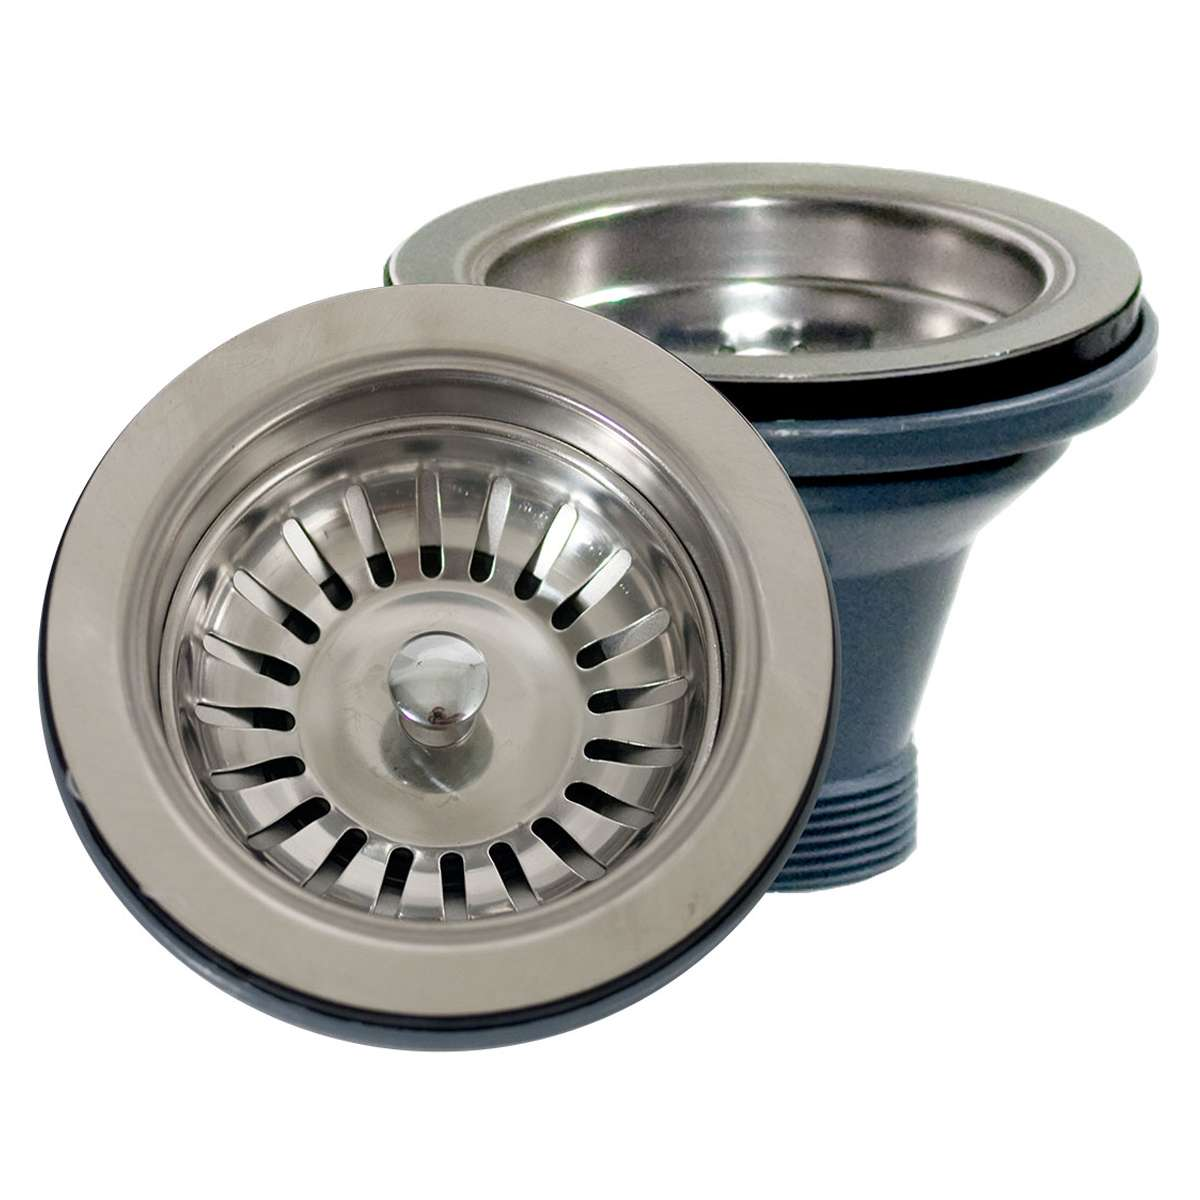 Nantucket sinks ns35l ext premium kitchen brushed satin silver basket strainer drain for fireclay sinks